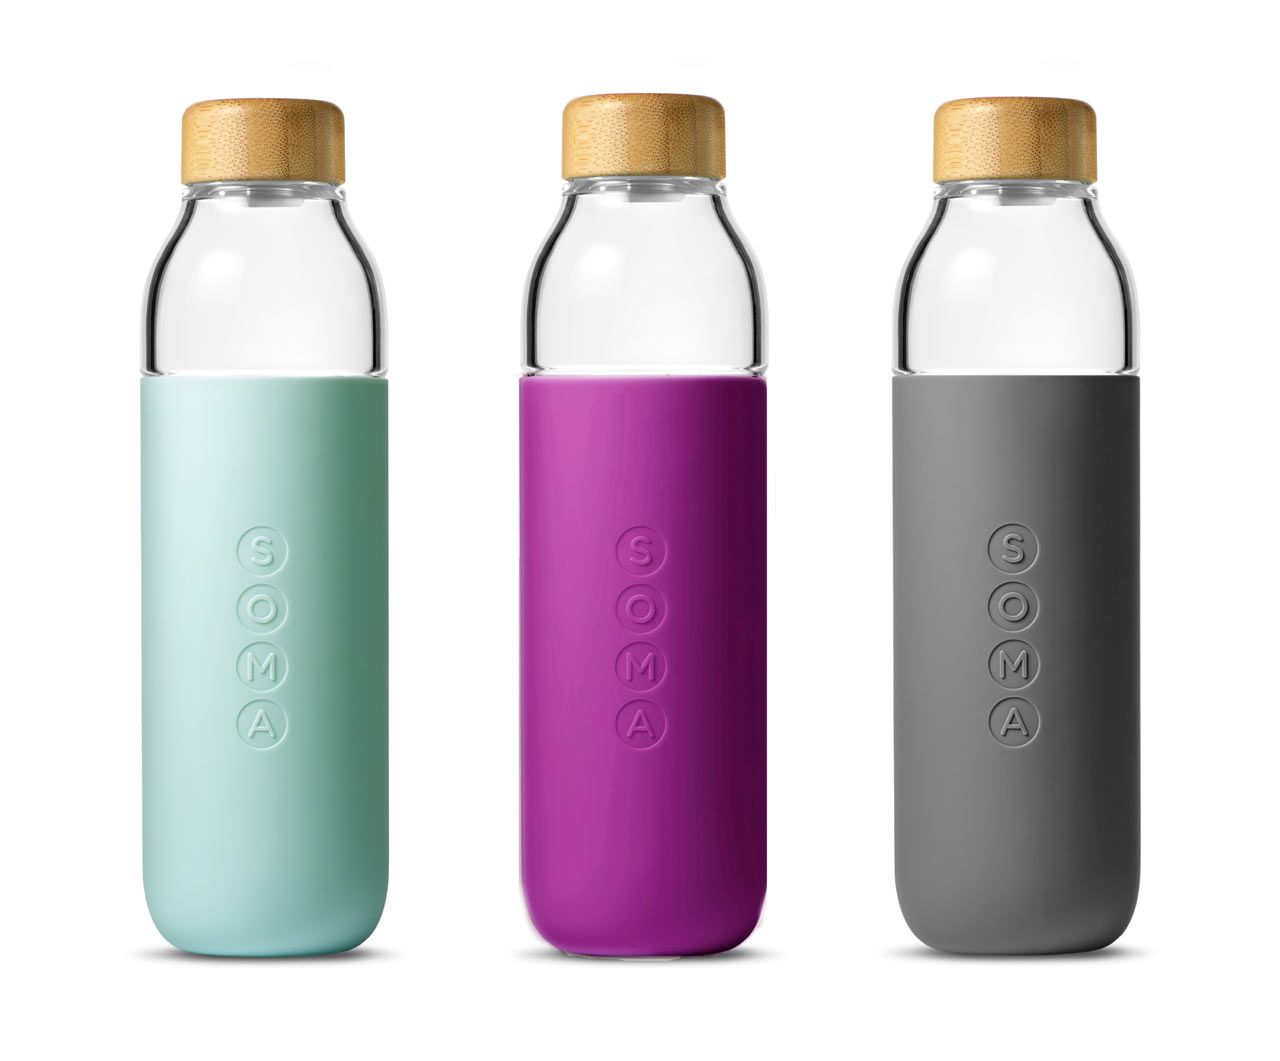 soma glass water bottles 1 glass water bottle water bottles and bottle. Black Bedroom Furniture Sets. Home Design Ideas